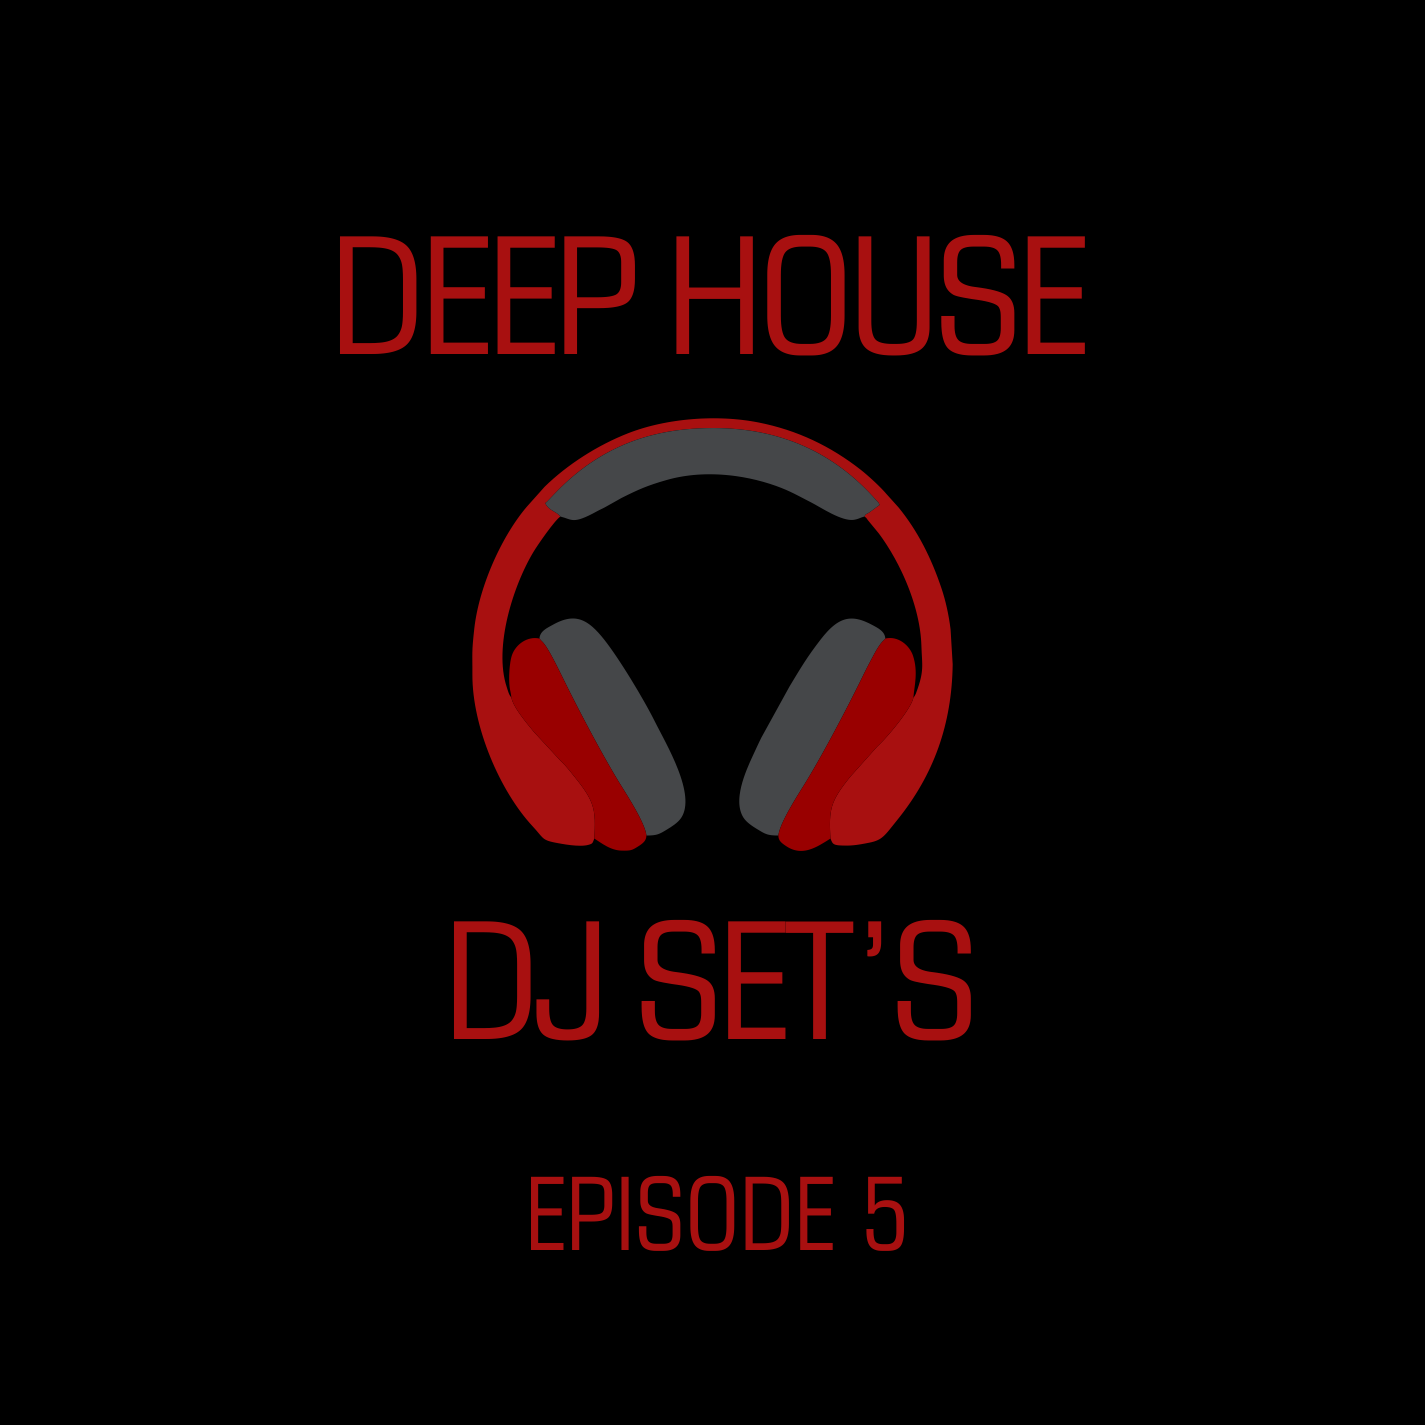 Deep house dj set 39 s episode 5 deep house dj set 39 s for Deep house music djs